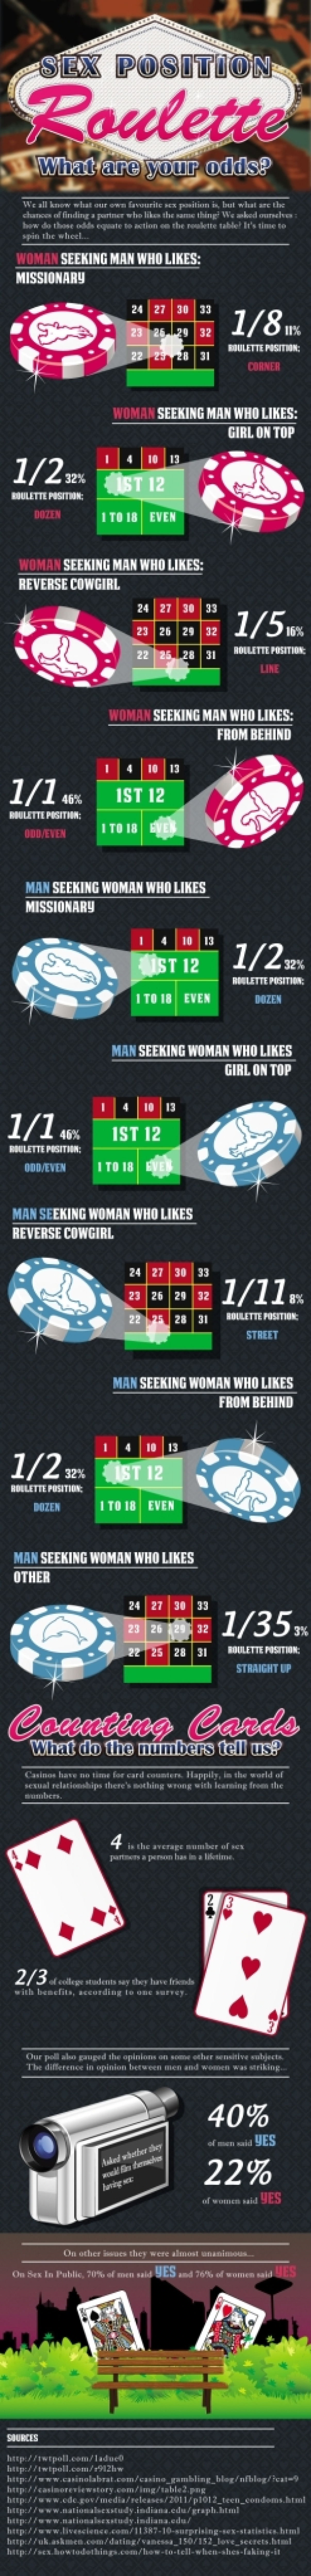 Sex Position Roulette Infographic